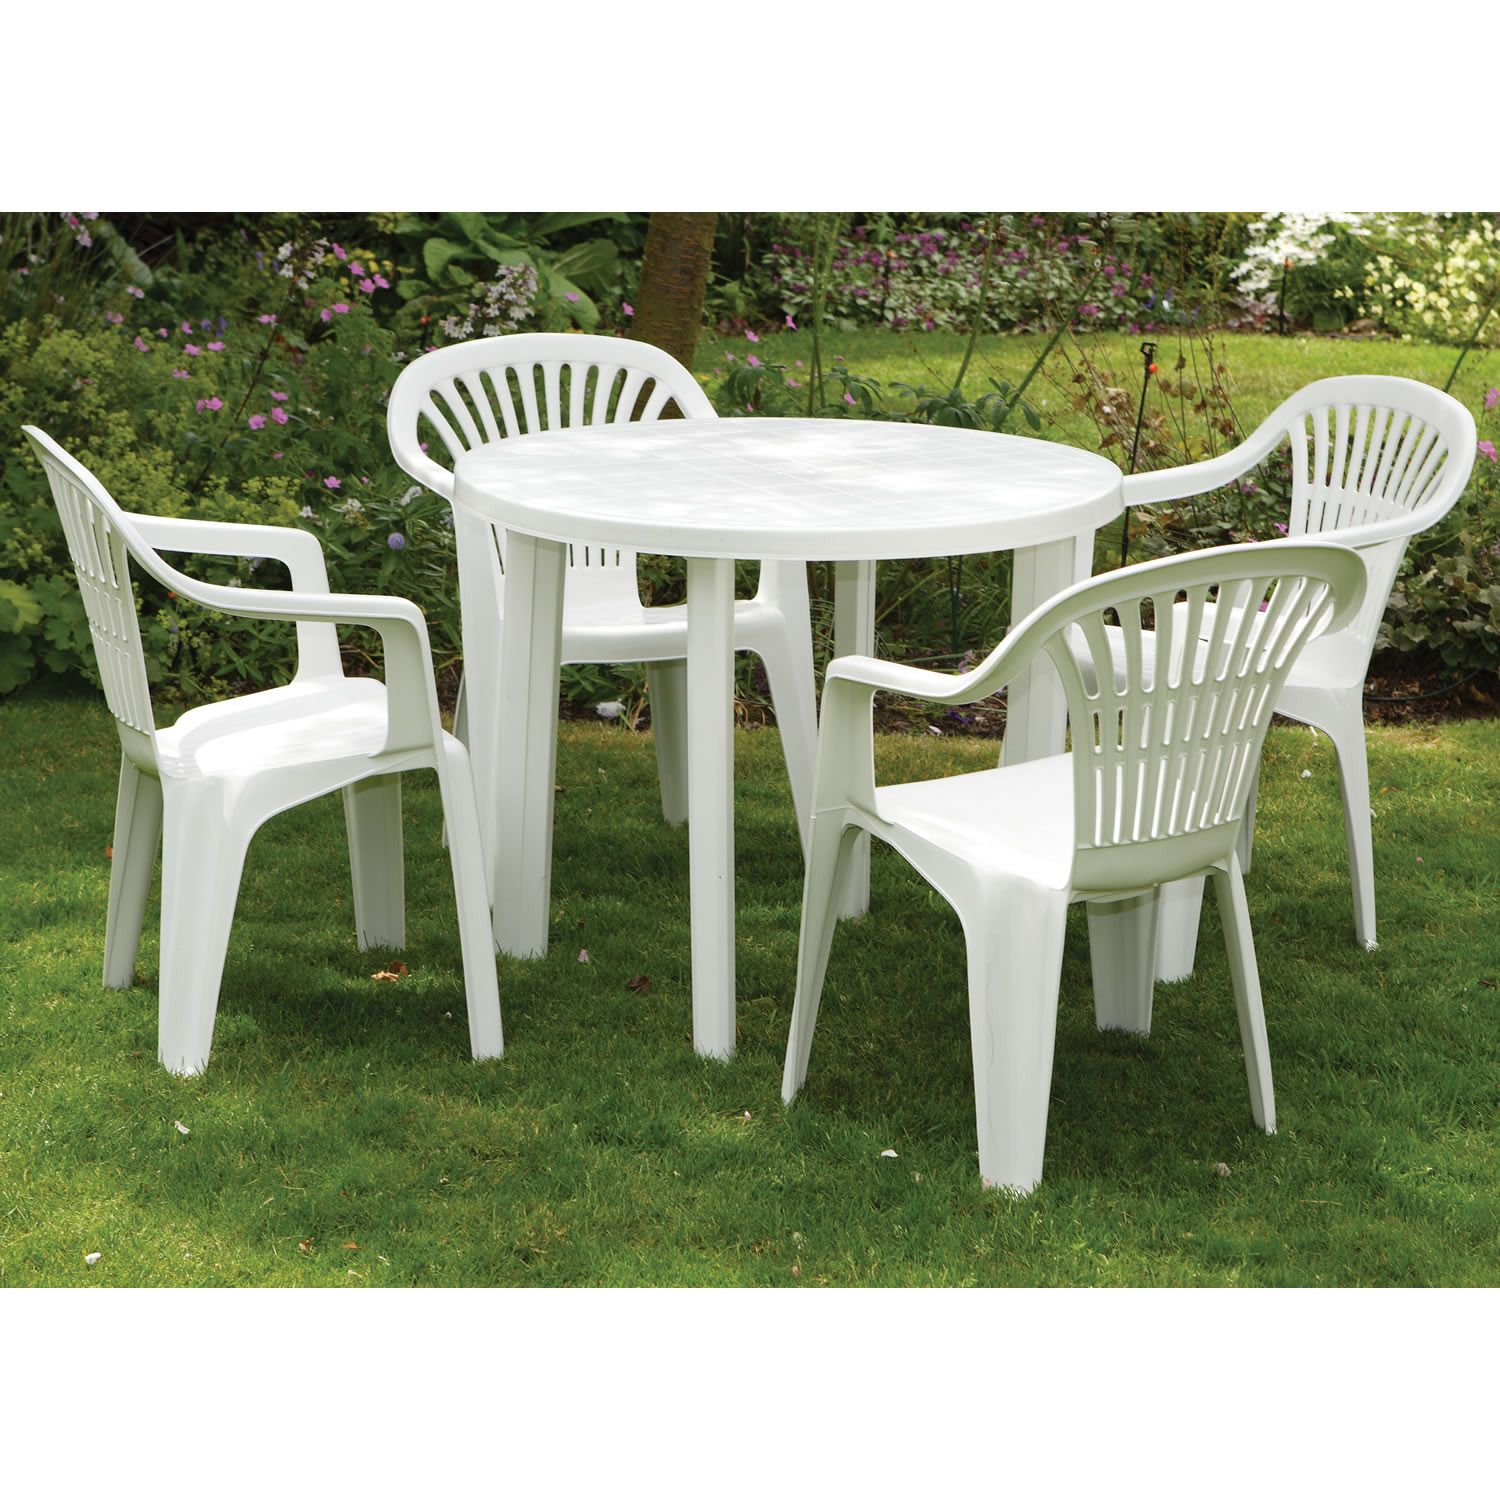 100 Round Plastic Garden Table Best Home Office Furniture Check